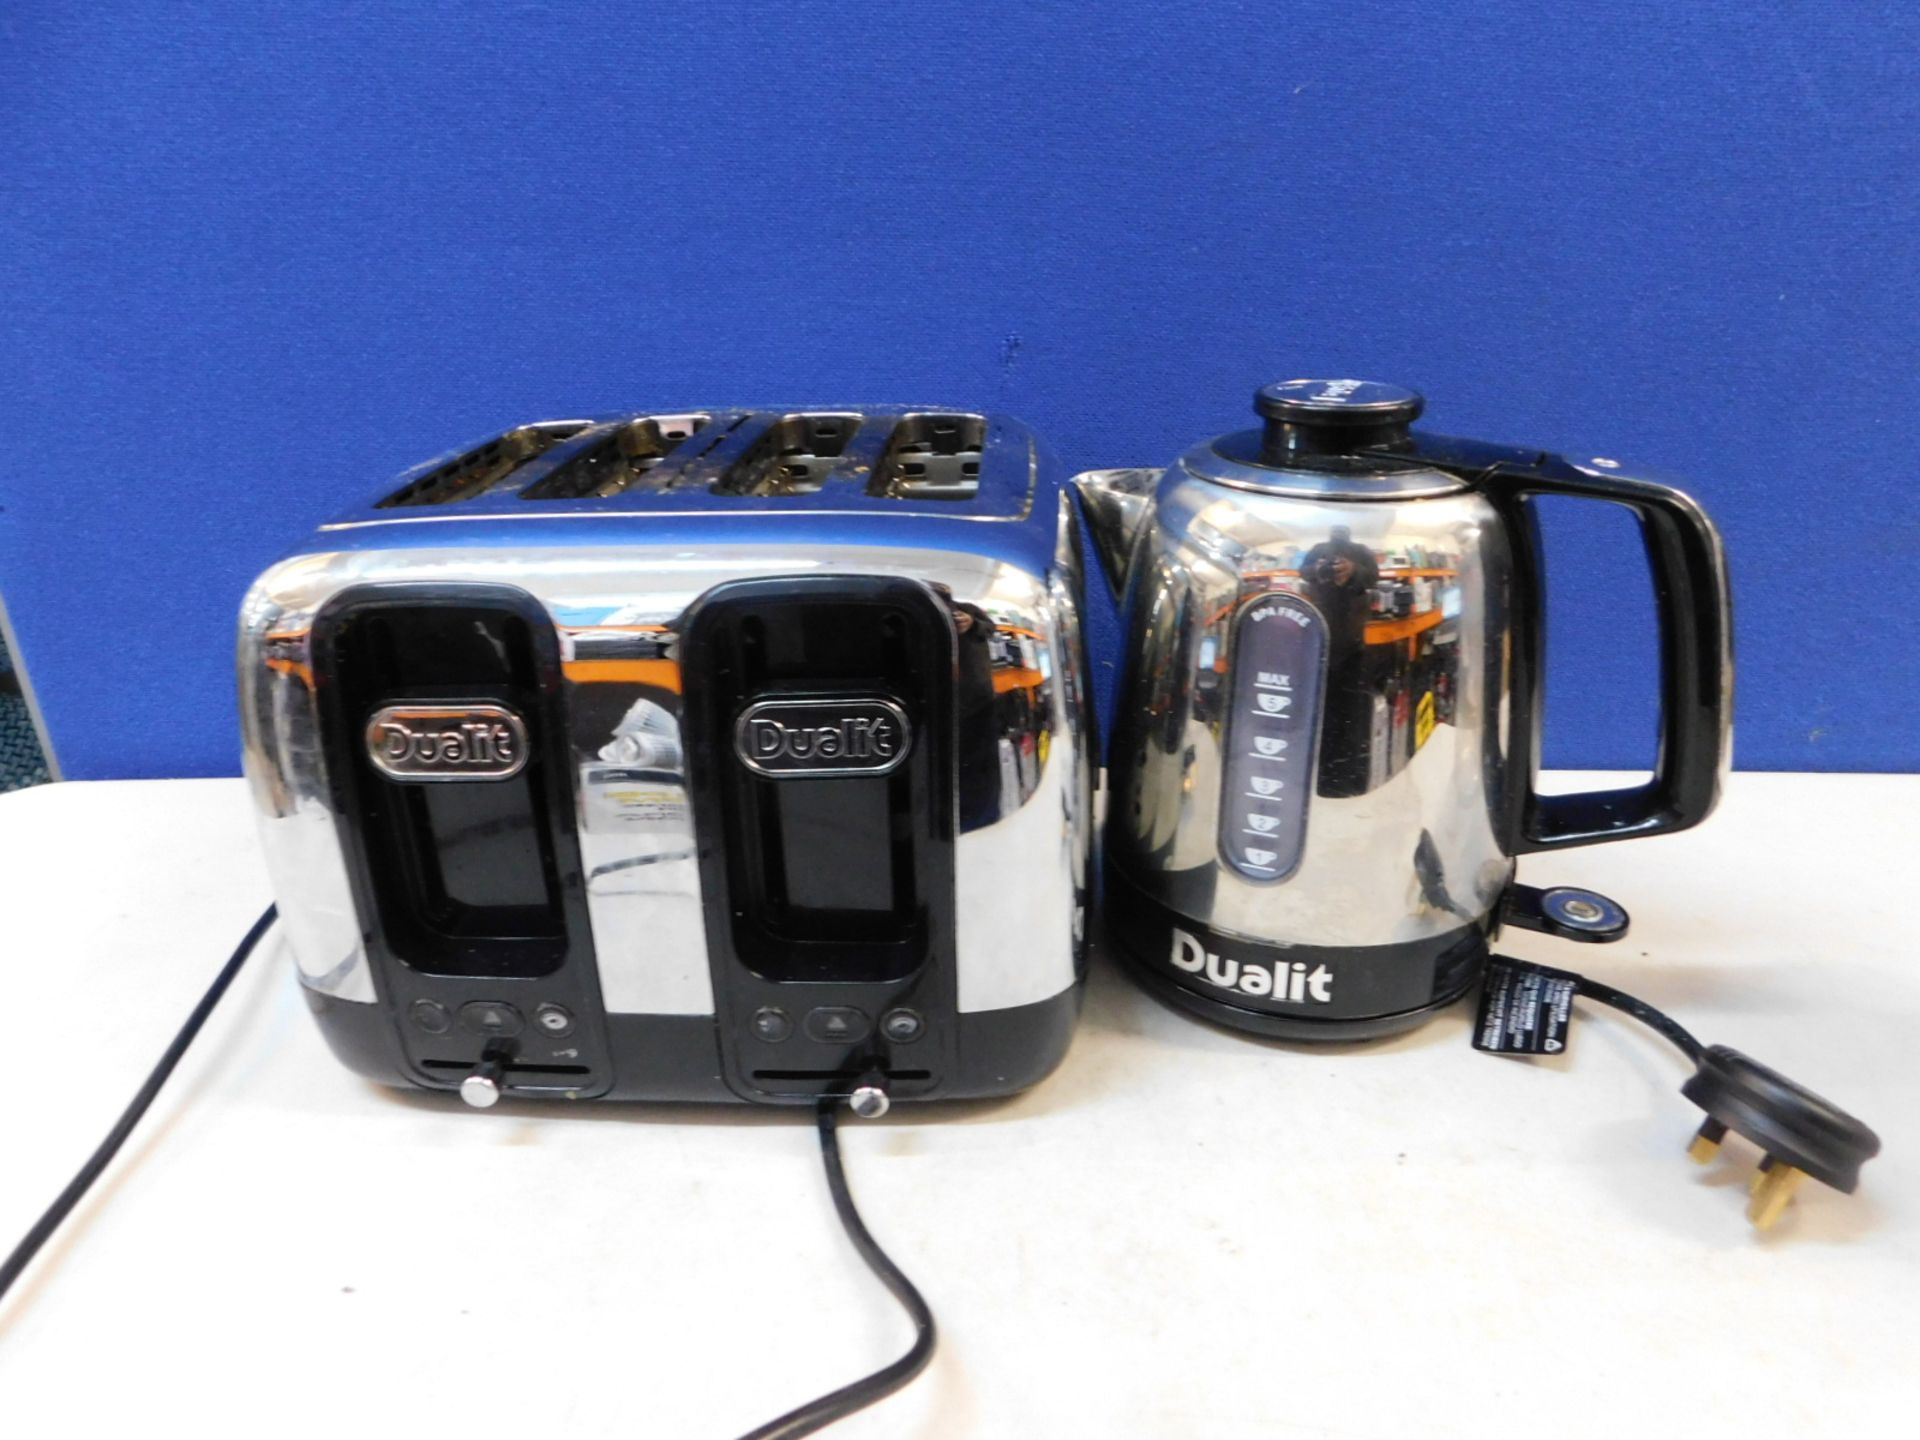 Lot 800 - 1 DUALIT 4 SLOT TOASTER AND RAPID BOIL KETTLE RRP £149.99